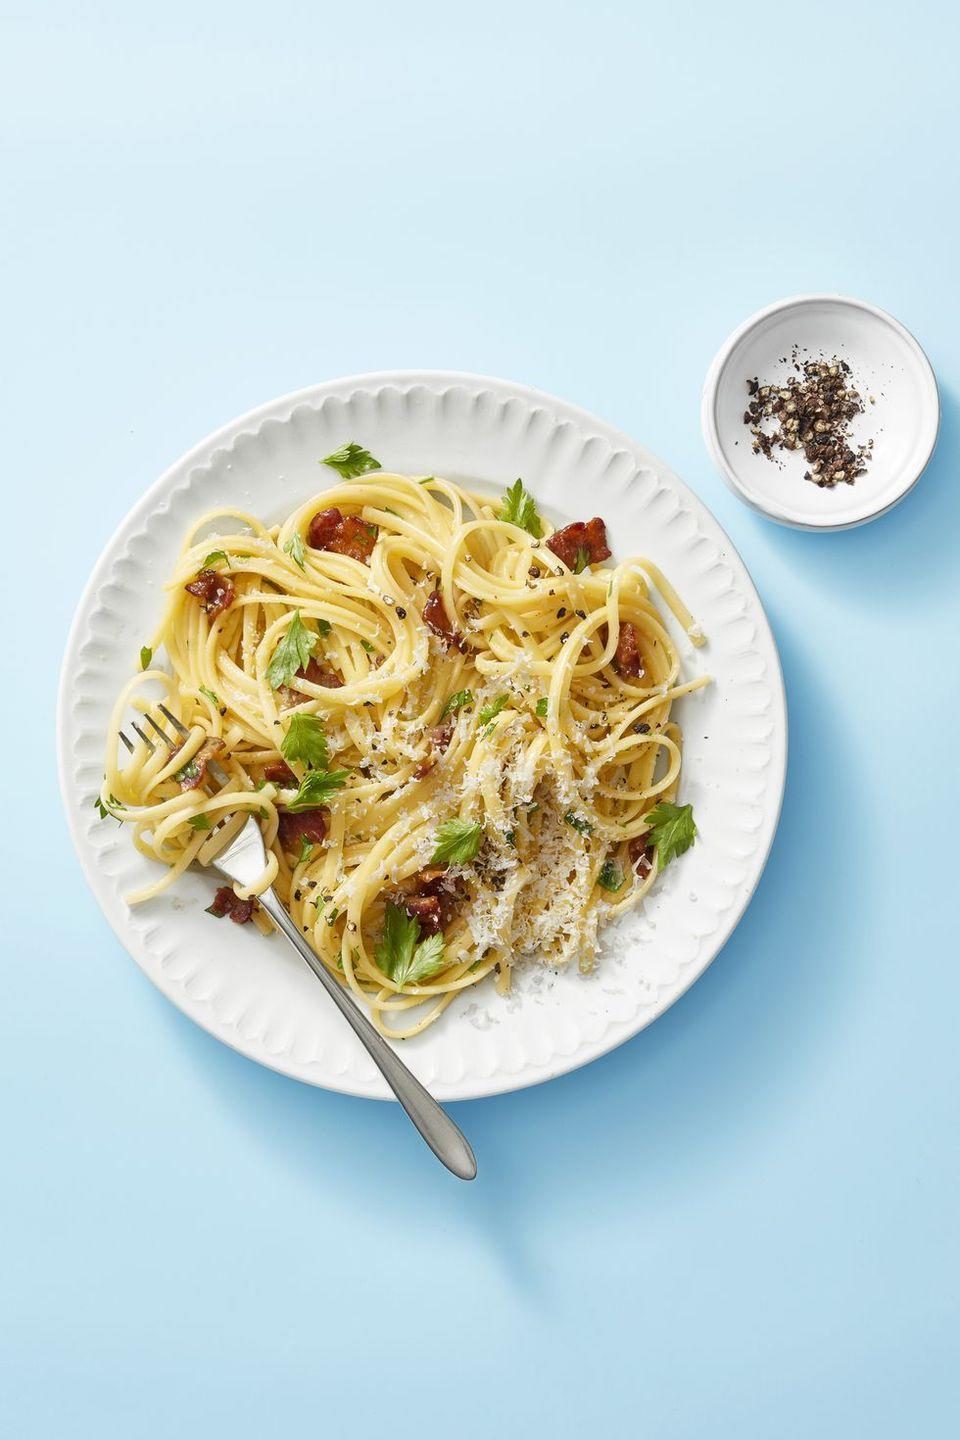 "<p>With just five ingredients and 30 minutes, you can have a hearty dinner on the table that the whole family will </p><p><em><a href=""https://www.goodhousekeeping.com/food-recipes/easy/a23694487/linguine-carbonara-recipe/"" rel=""nofollow noopener"" target=""_blank"" data-ylk=""slk:Get the recipe for Linguine Carbonara »"" class=""link rapid-noclick-resp"">Get the recipe for Linguine Carbonara »</a></em></p>"